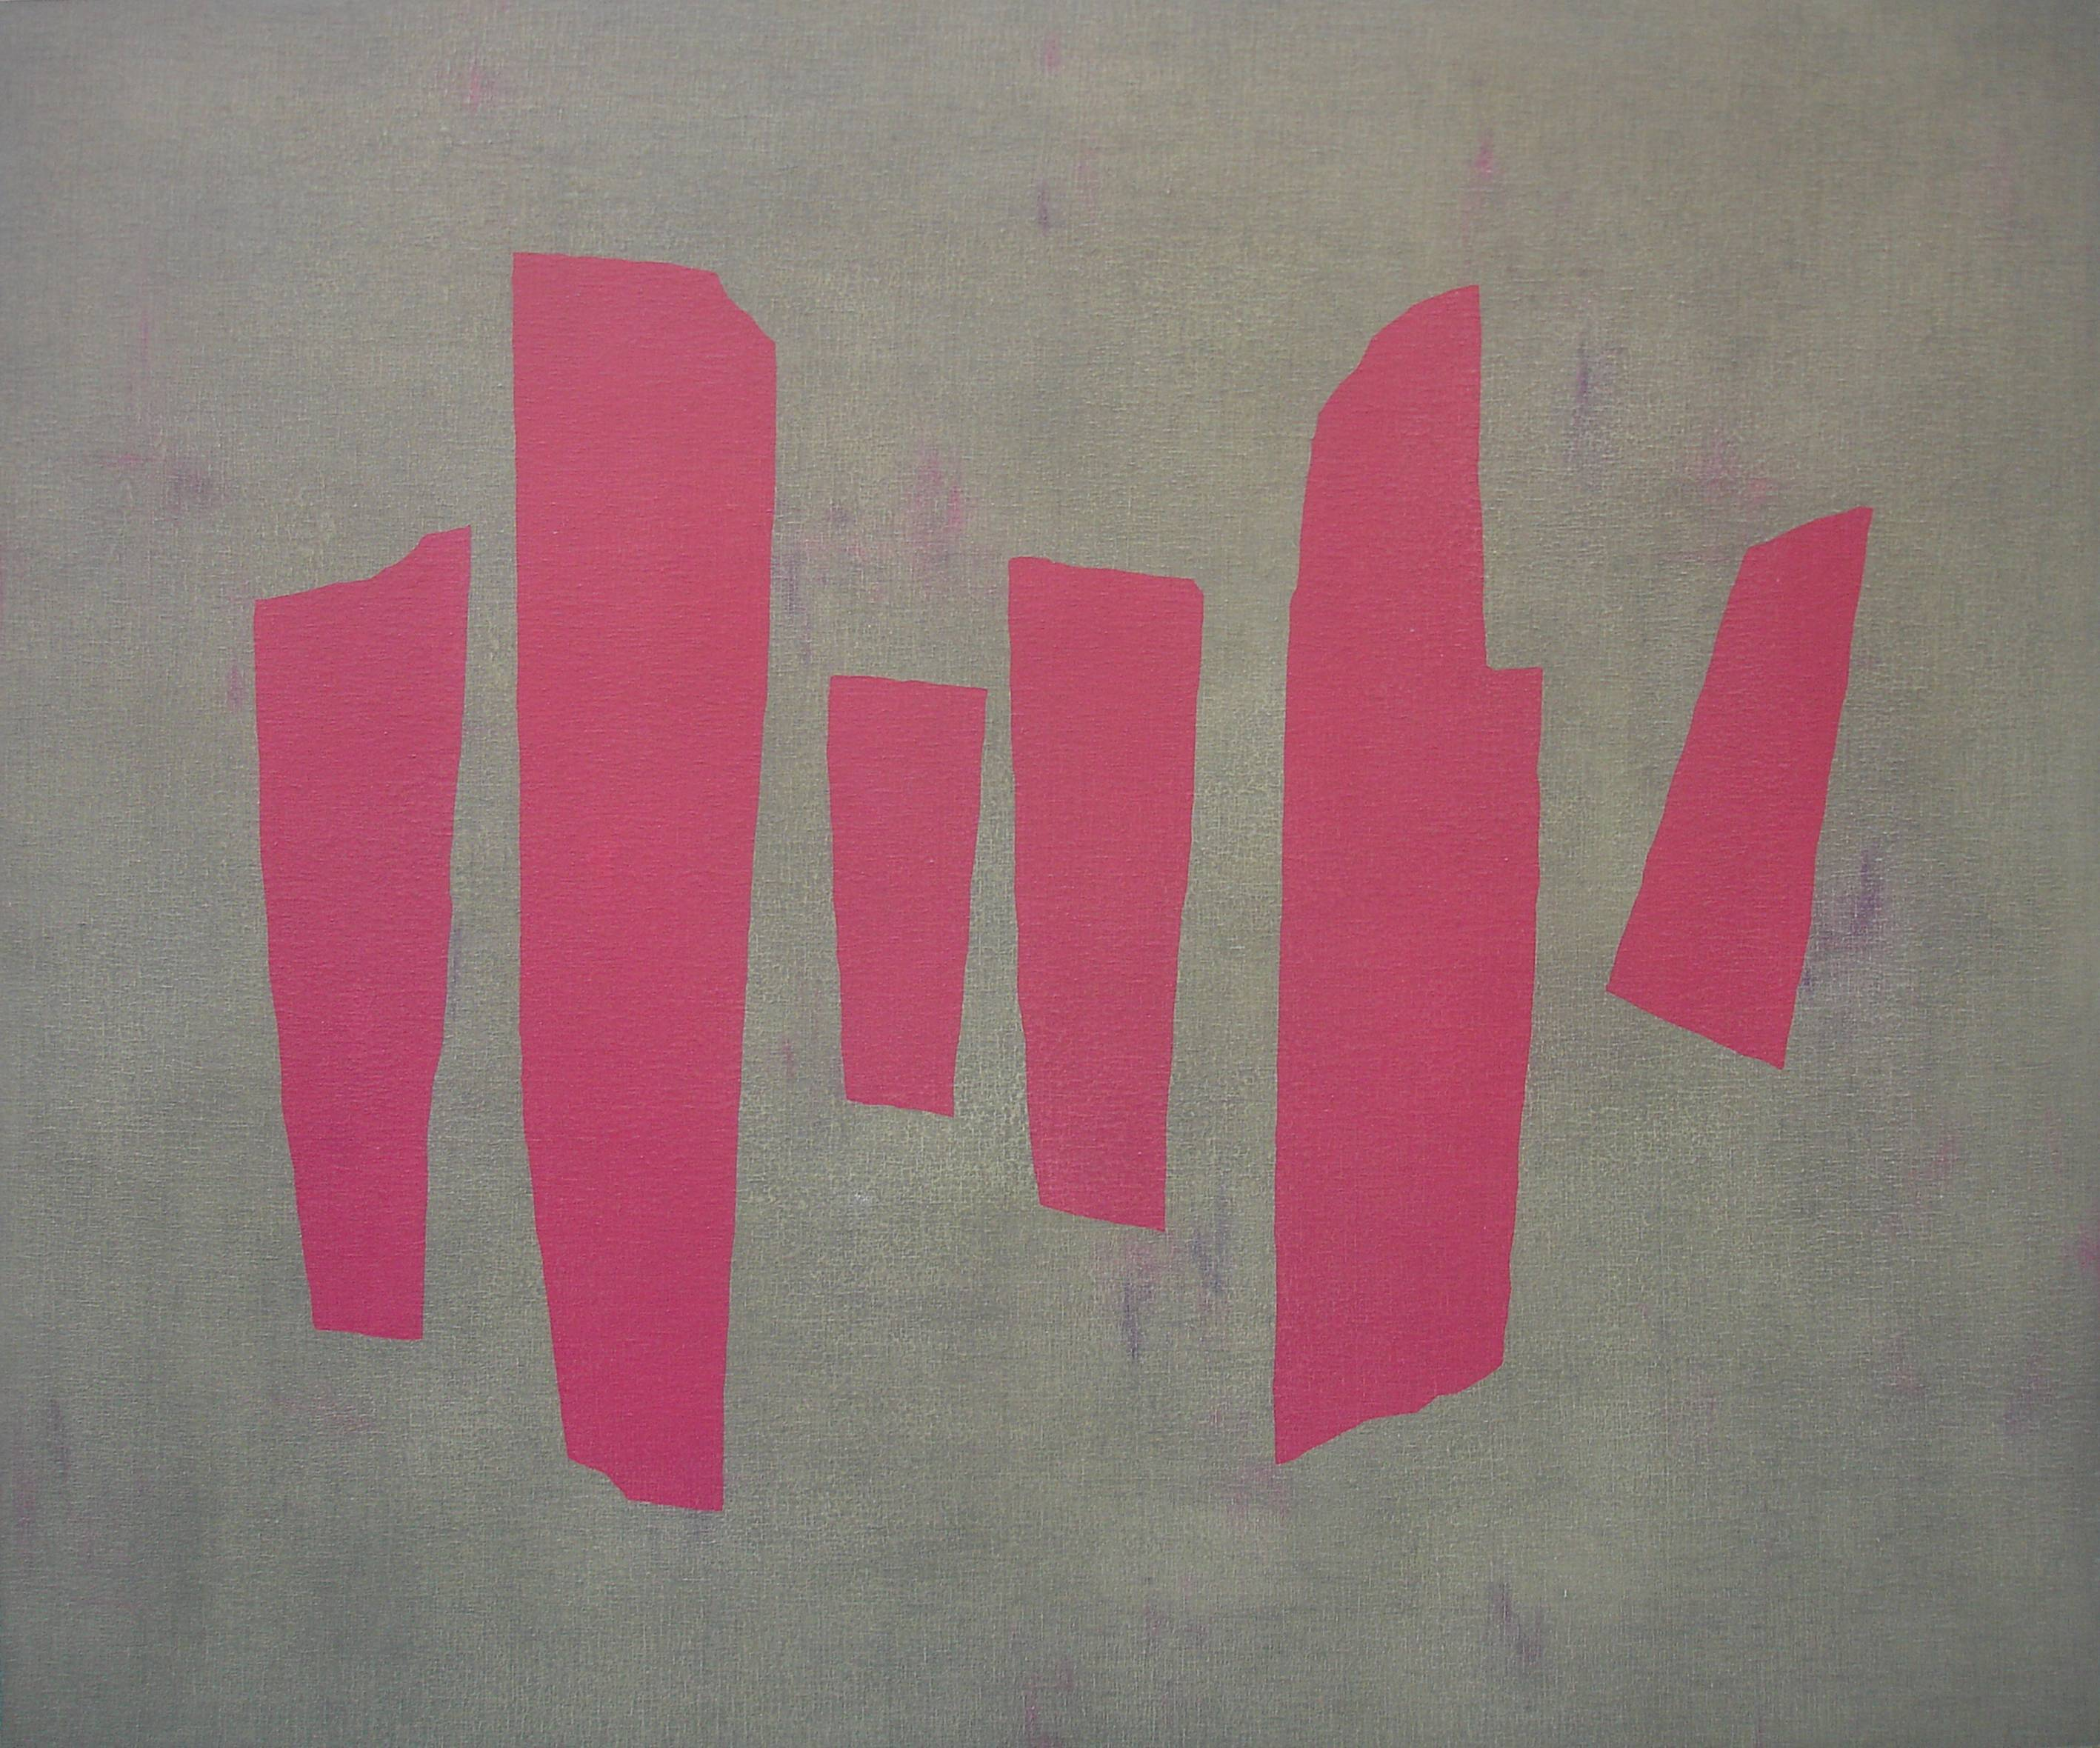 吳東龍 Blocks and Lines-13 2008 油彩 180 x 150 cm